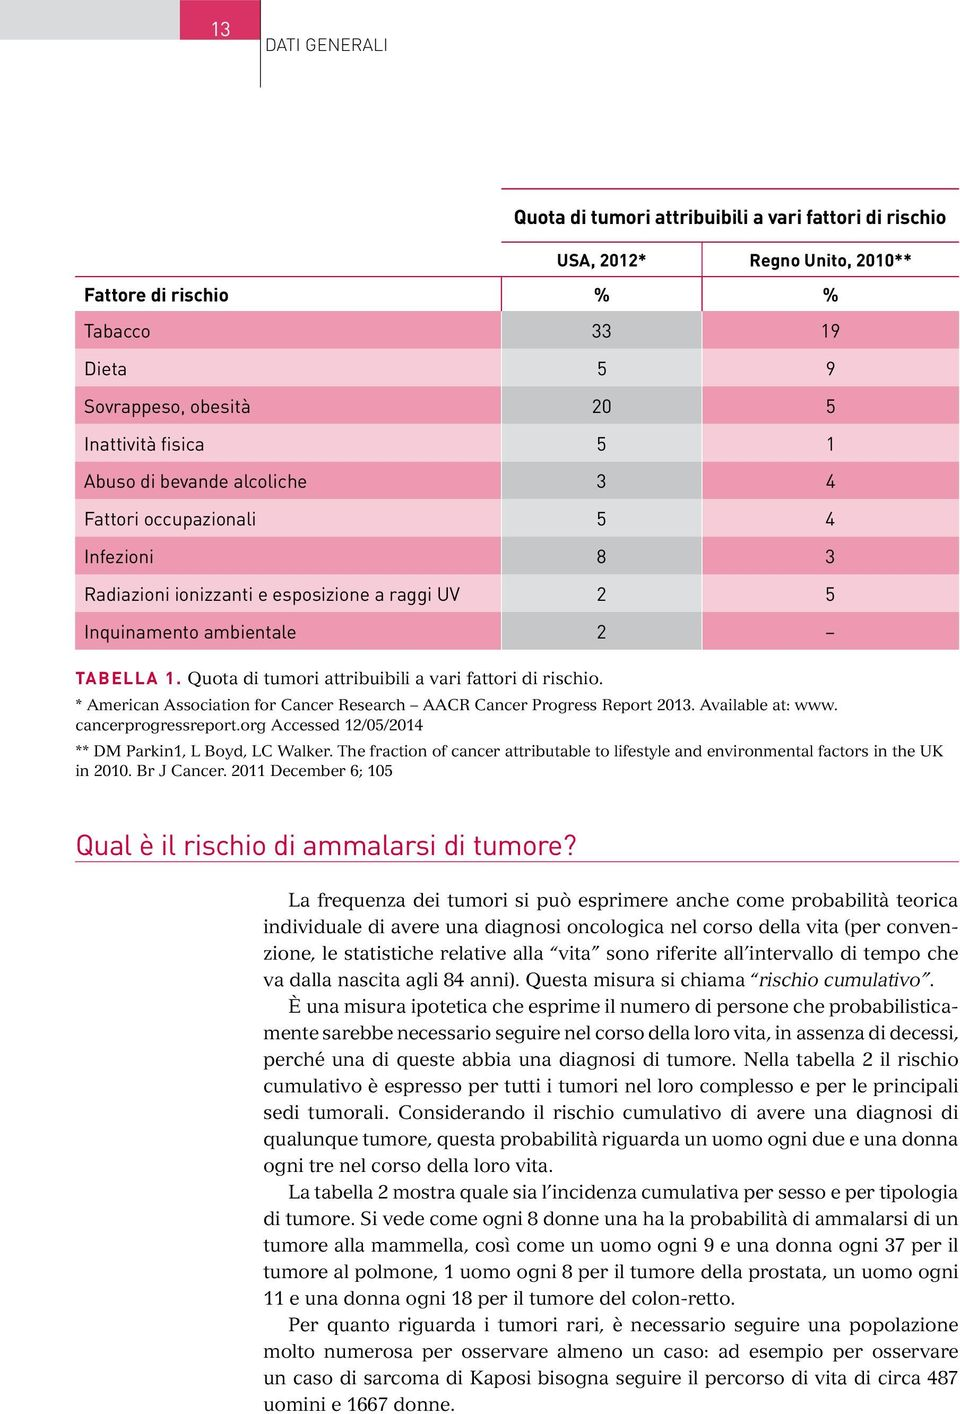 Quota di tumori attribuibili a vari fattori di rischio. * American Association for Cancer Research AACR Cancer Progress Report 2013. Available at: www. cancerprogressreport.